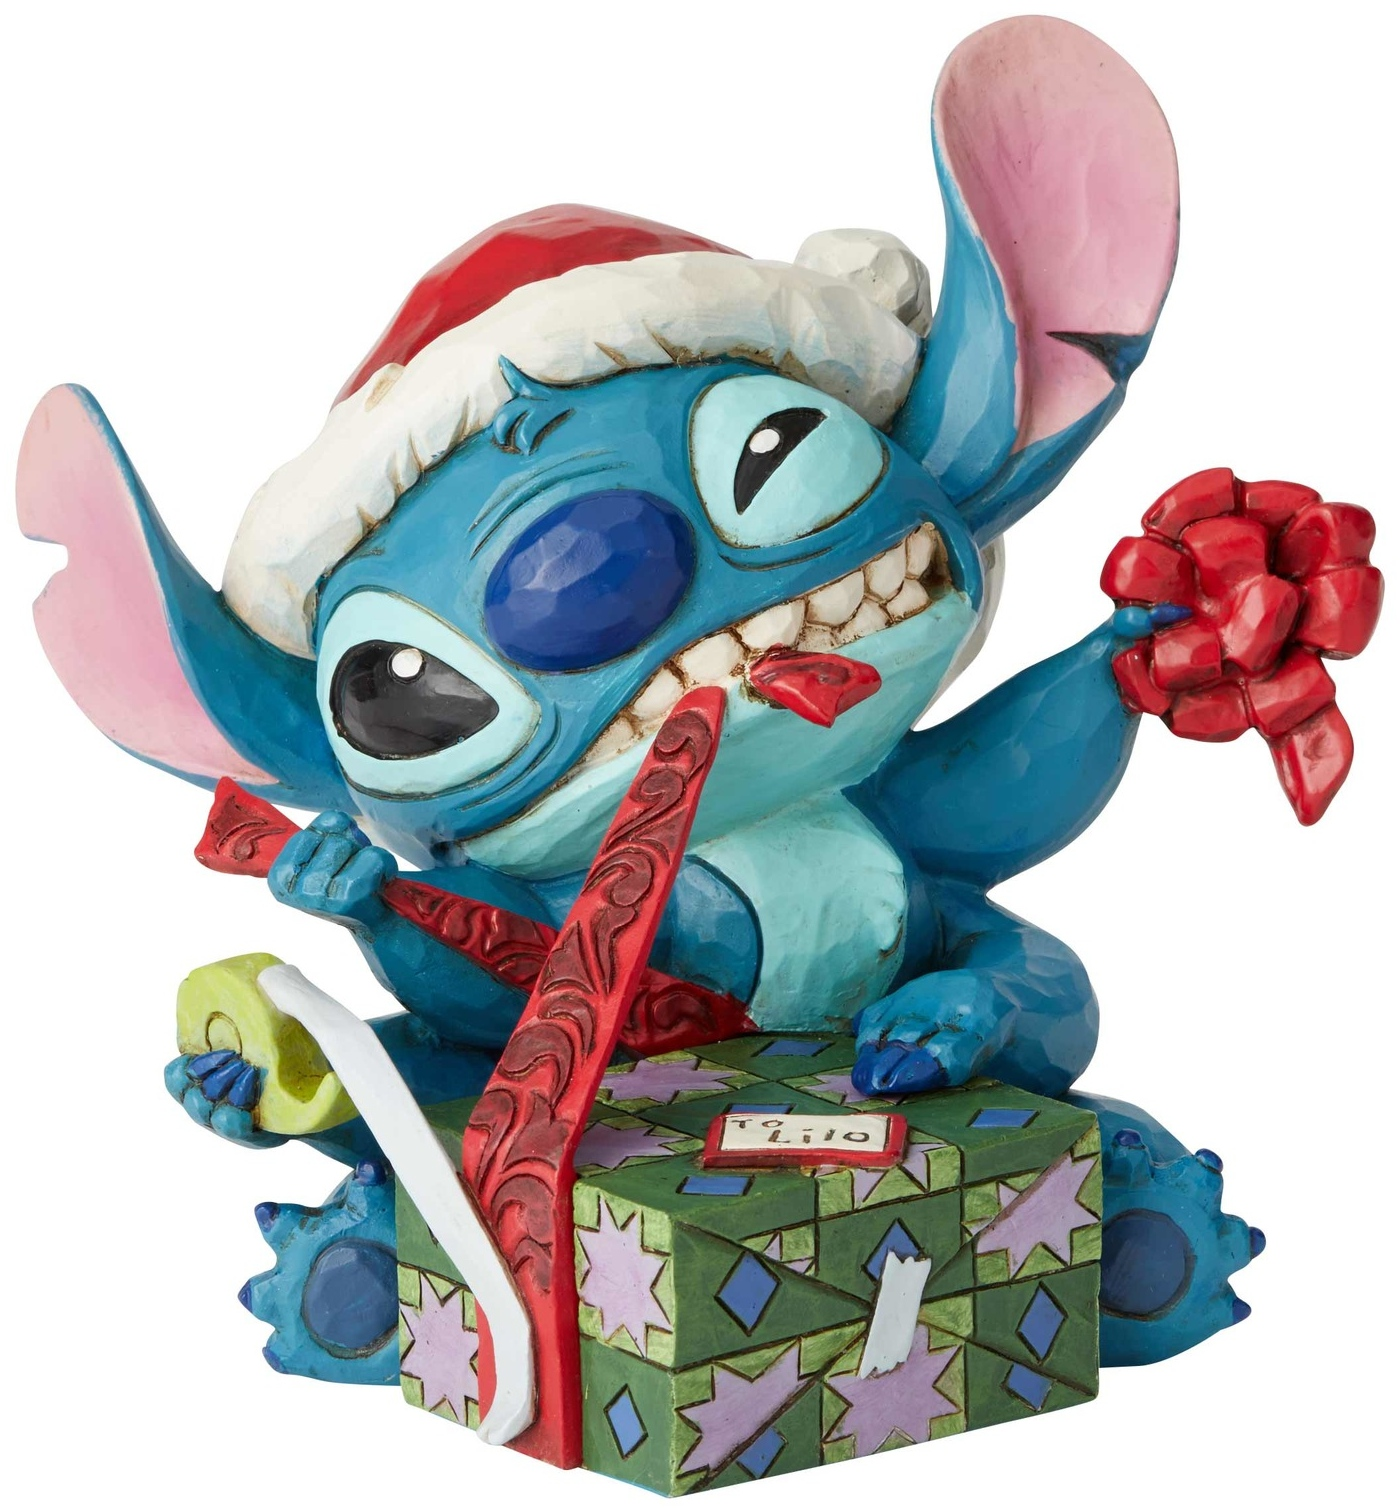 Disney Traditions by Jim Shore 6002833 Santa Stitch Wrapping Presents